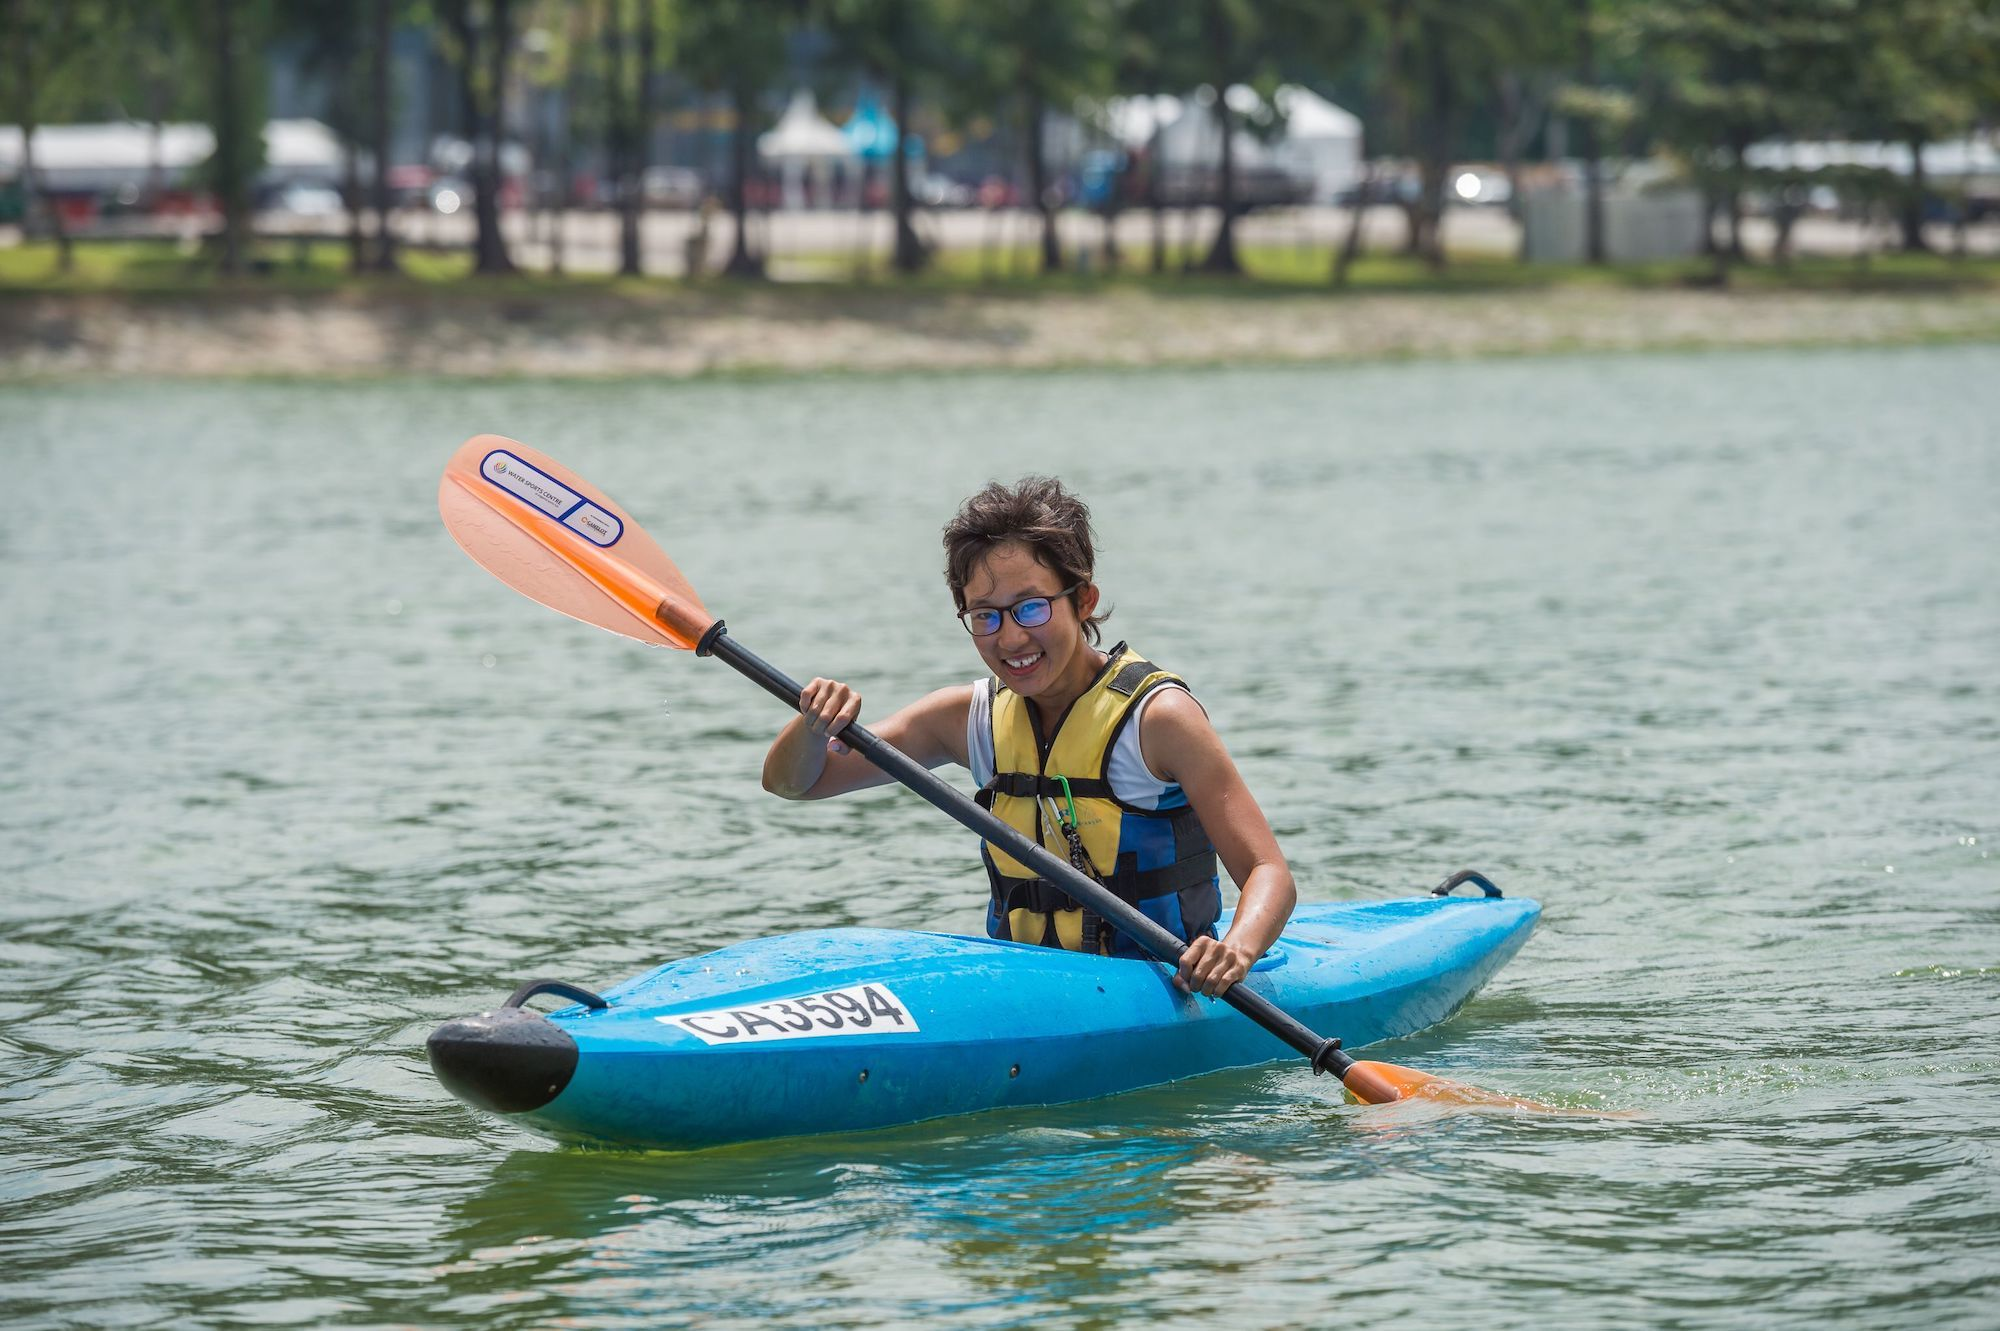 The best places for water sports in Singapore